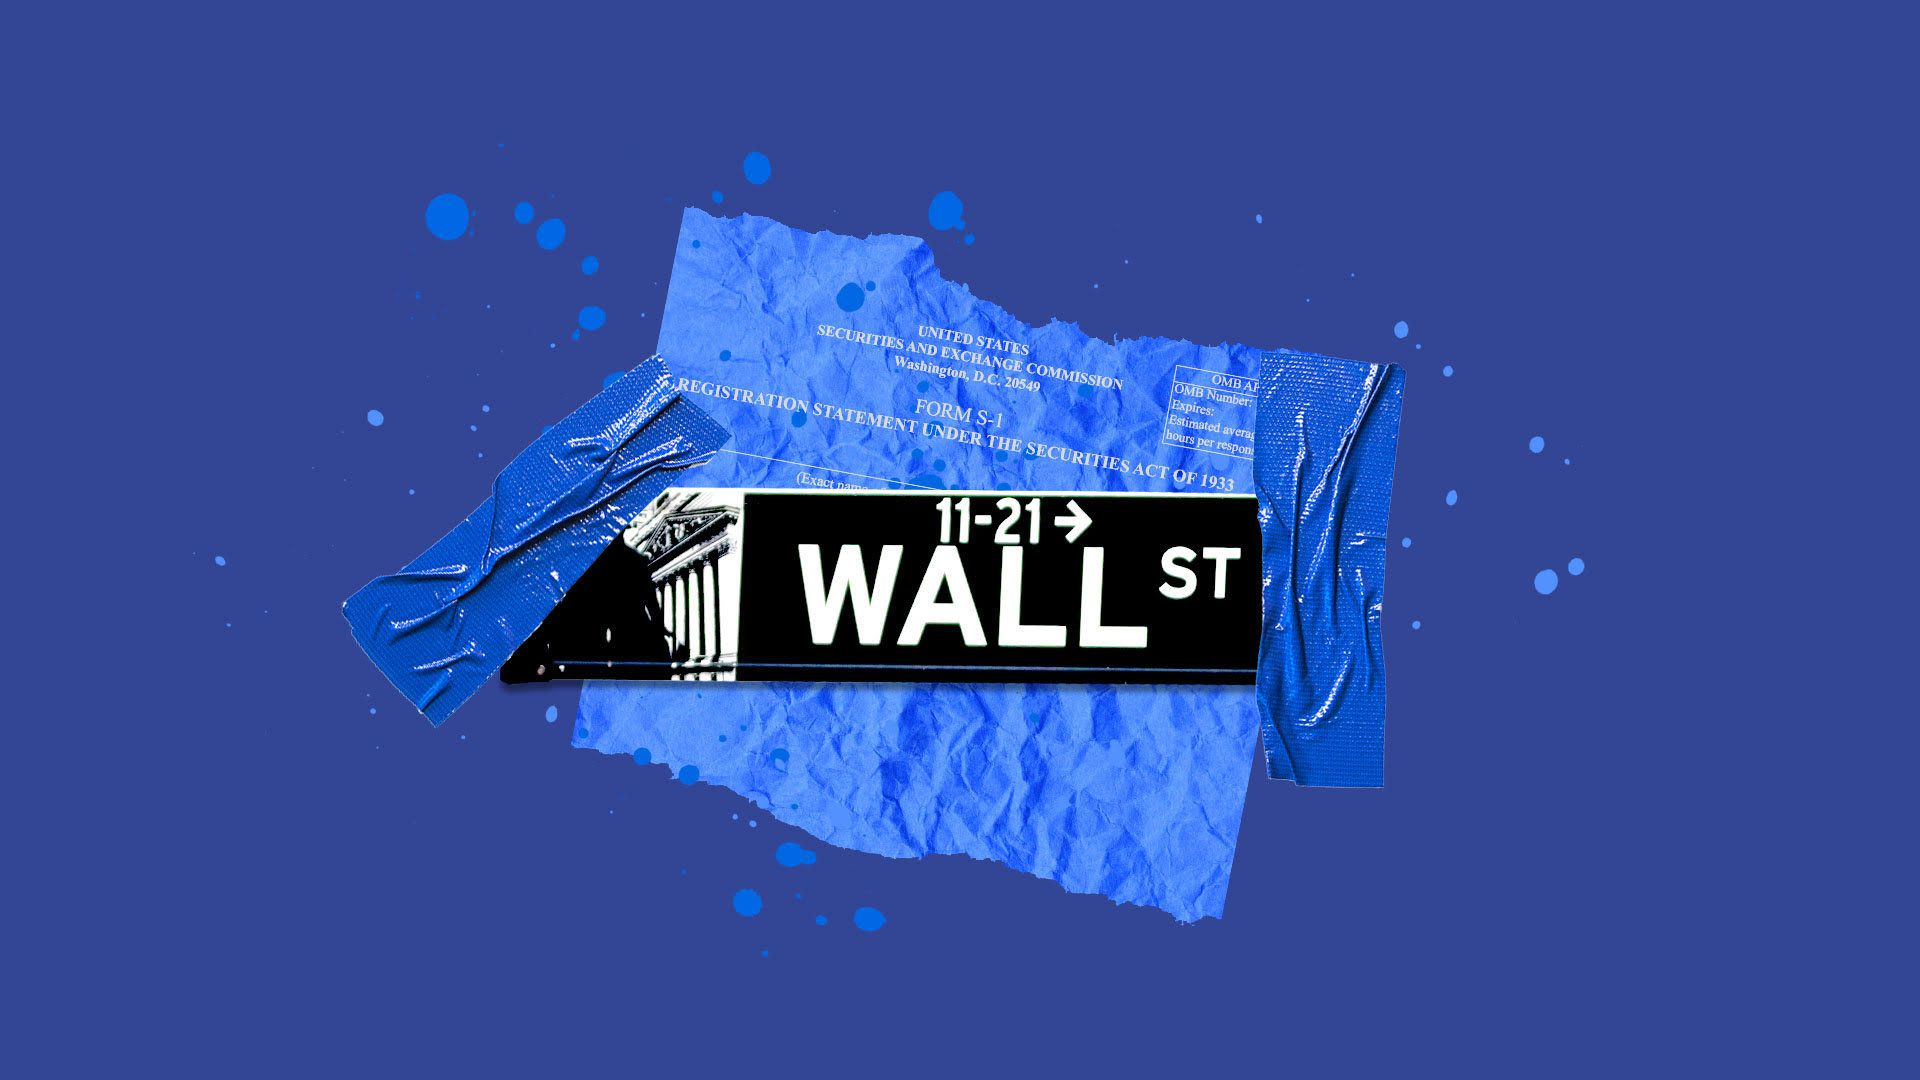 Collage illustration of the Wall Street street sign and IPO filing papers.